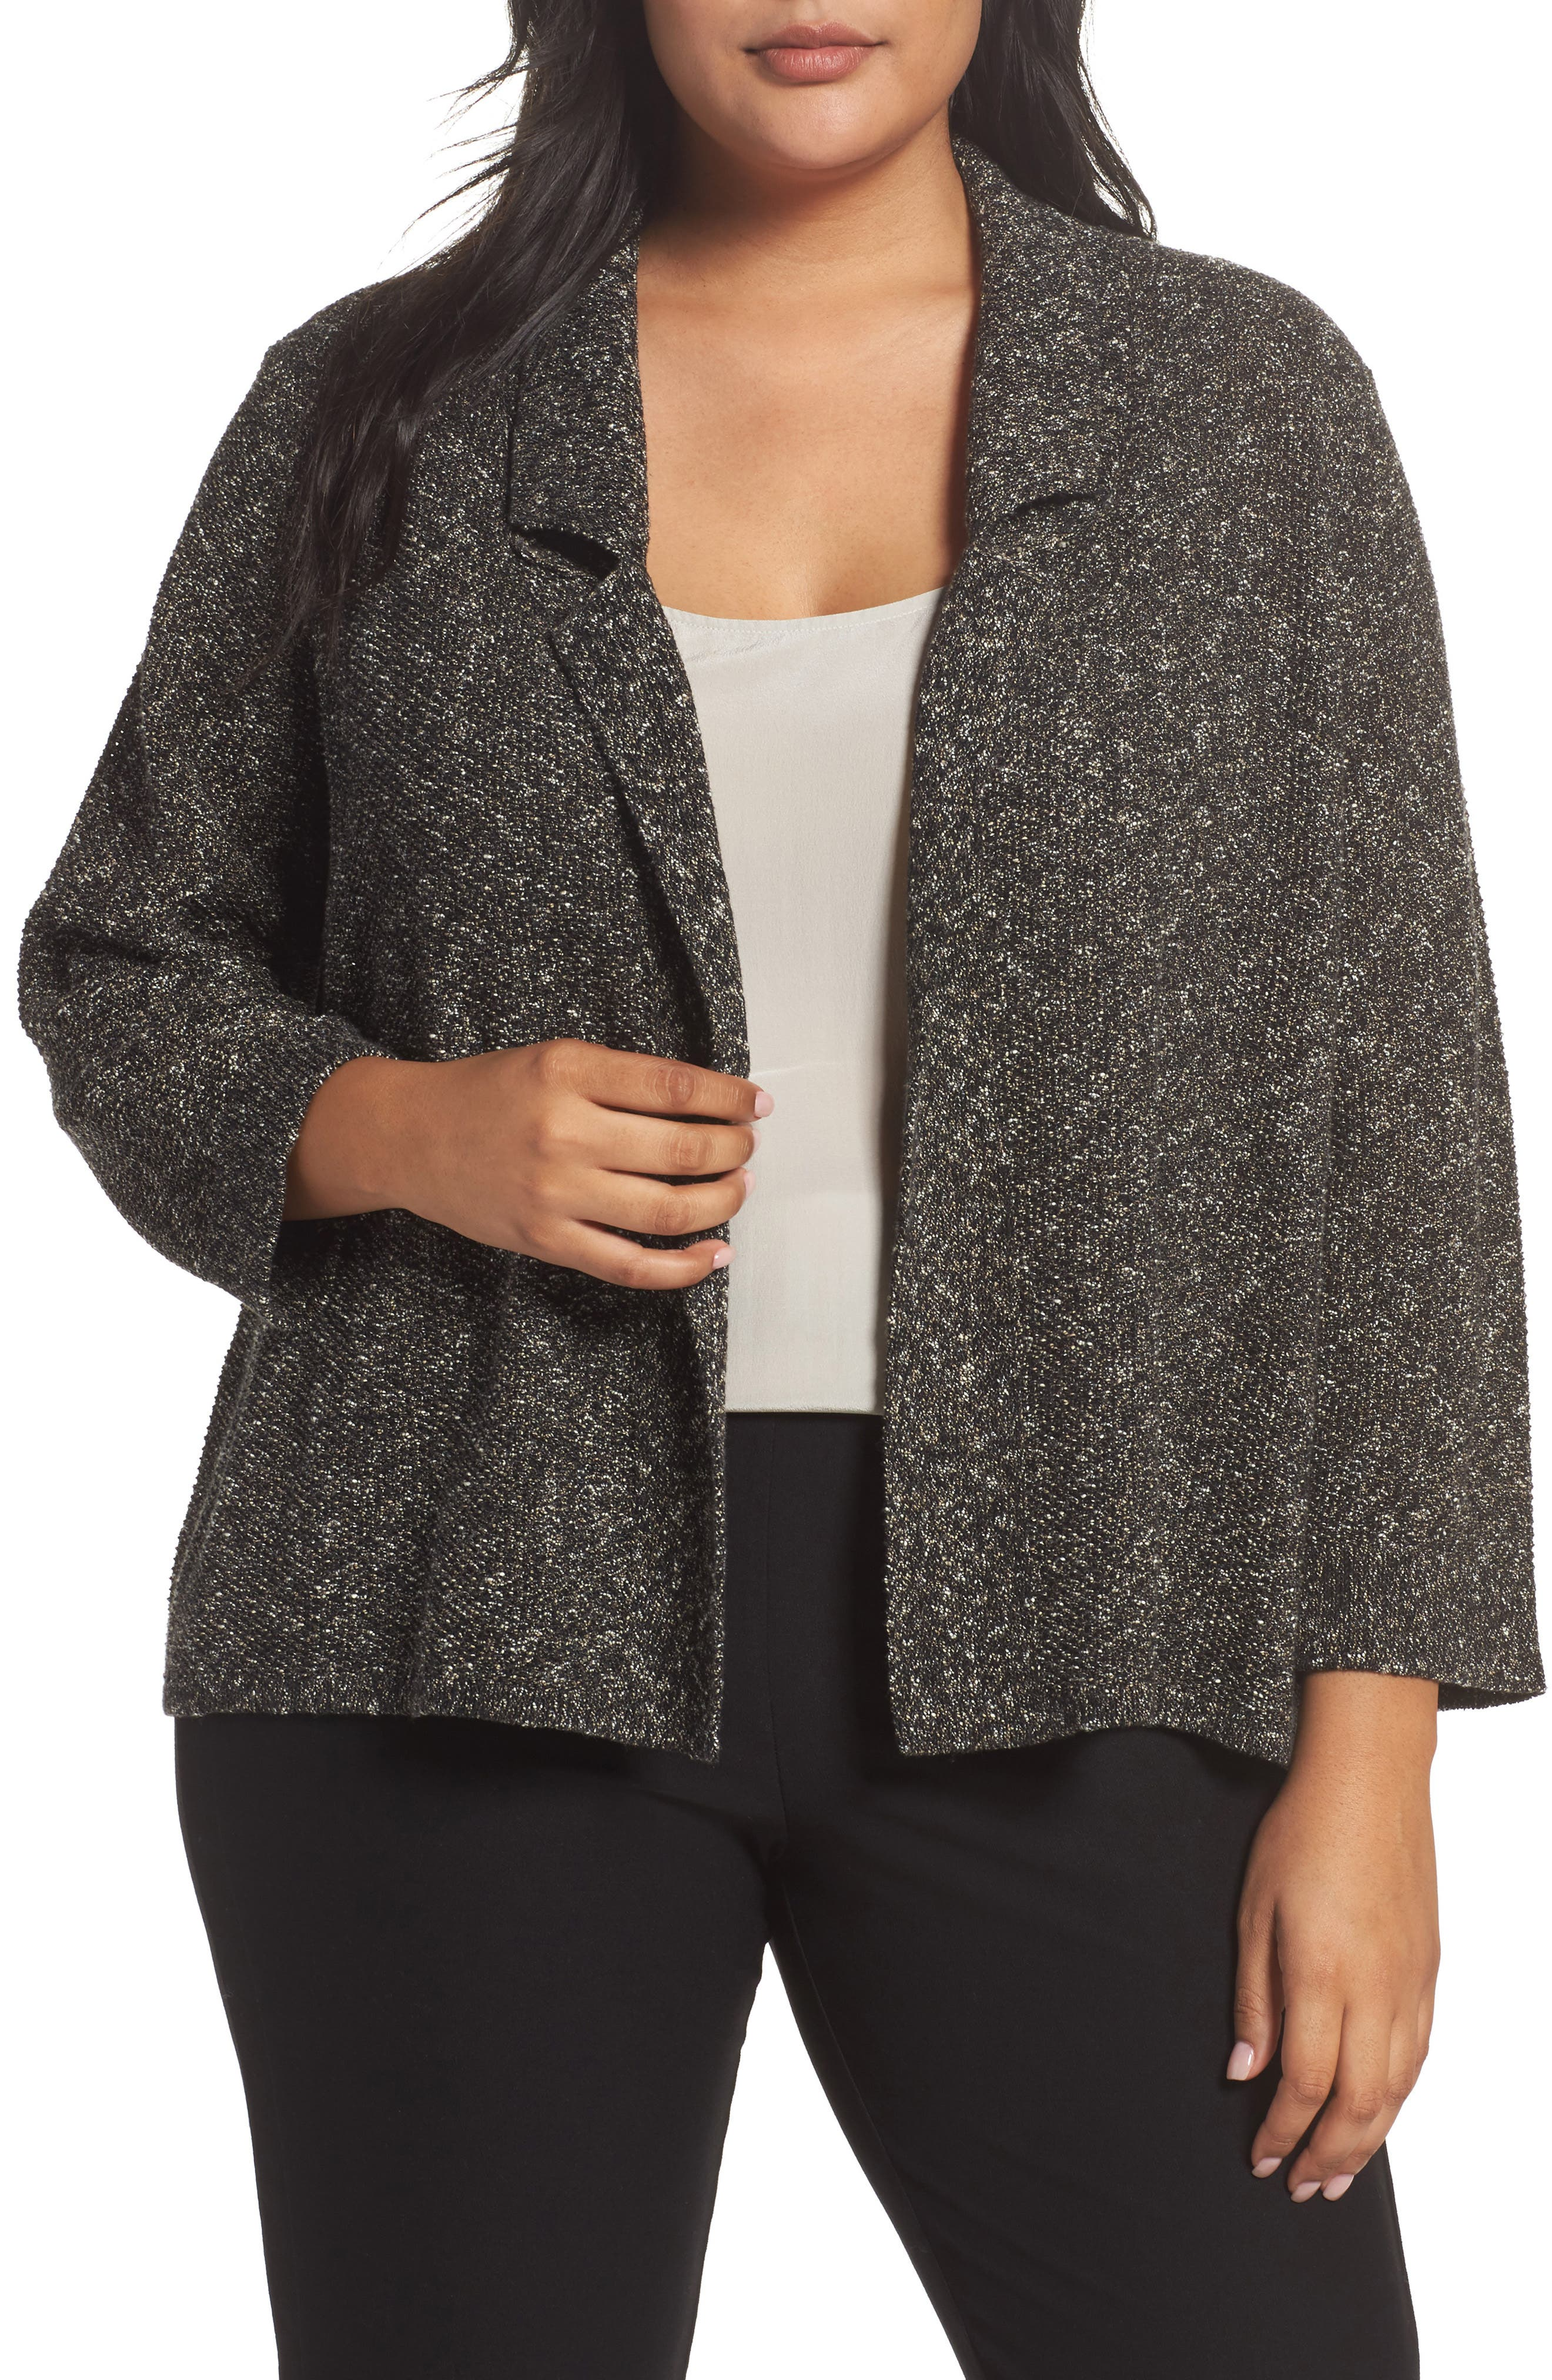 Alternate Image 1 Selected - Eileen Fisher Organic Cotton Blend Sweater Jacket (Plus Size)